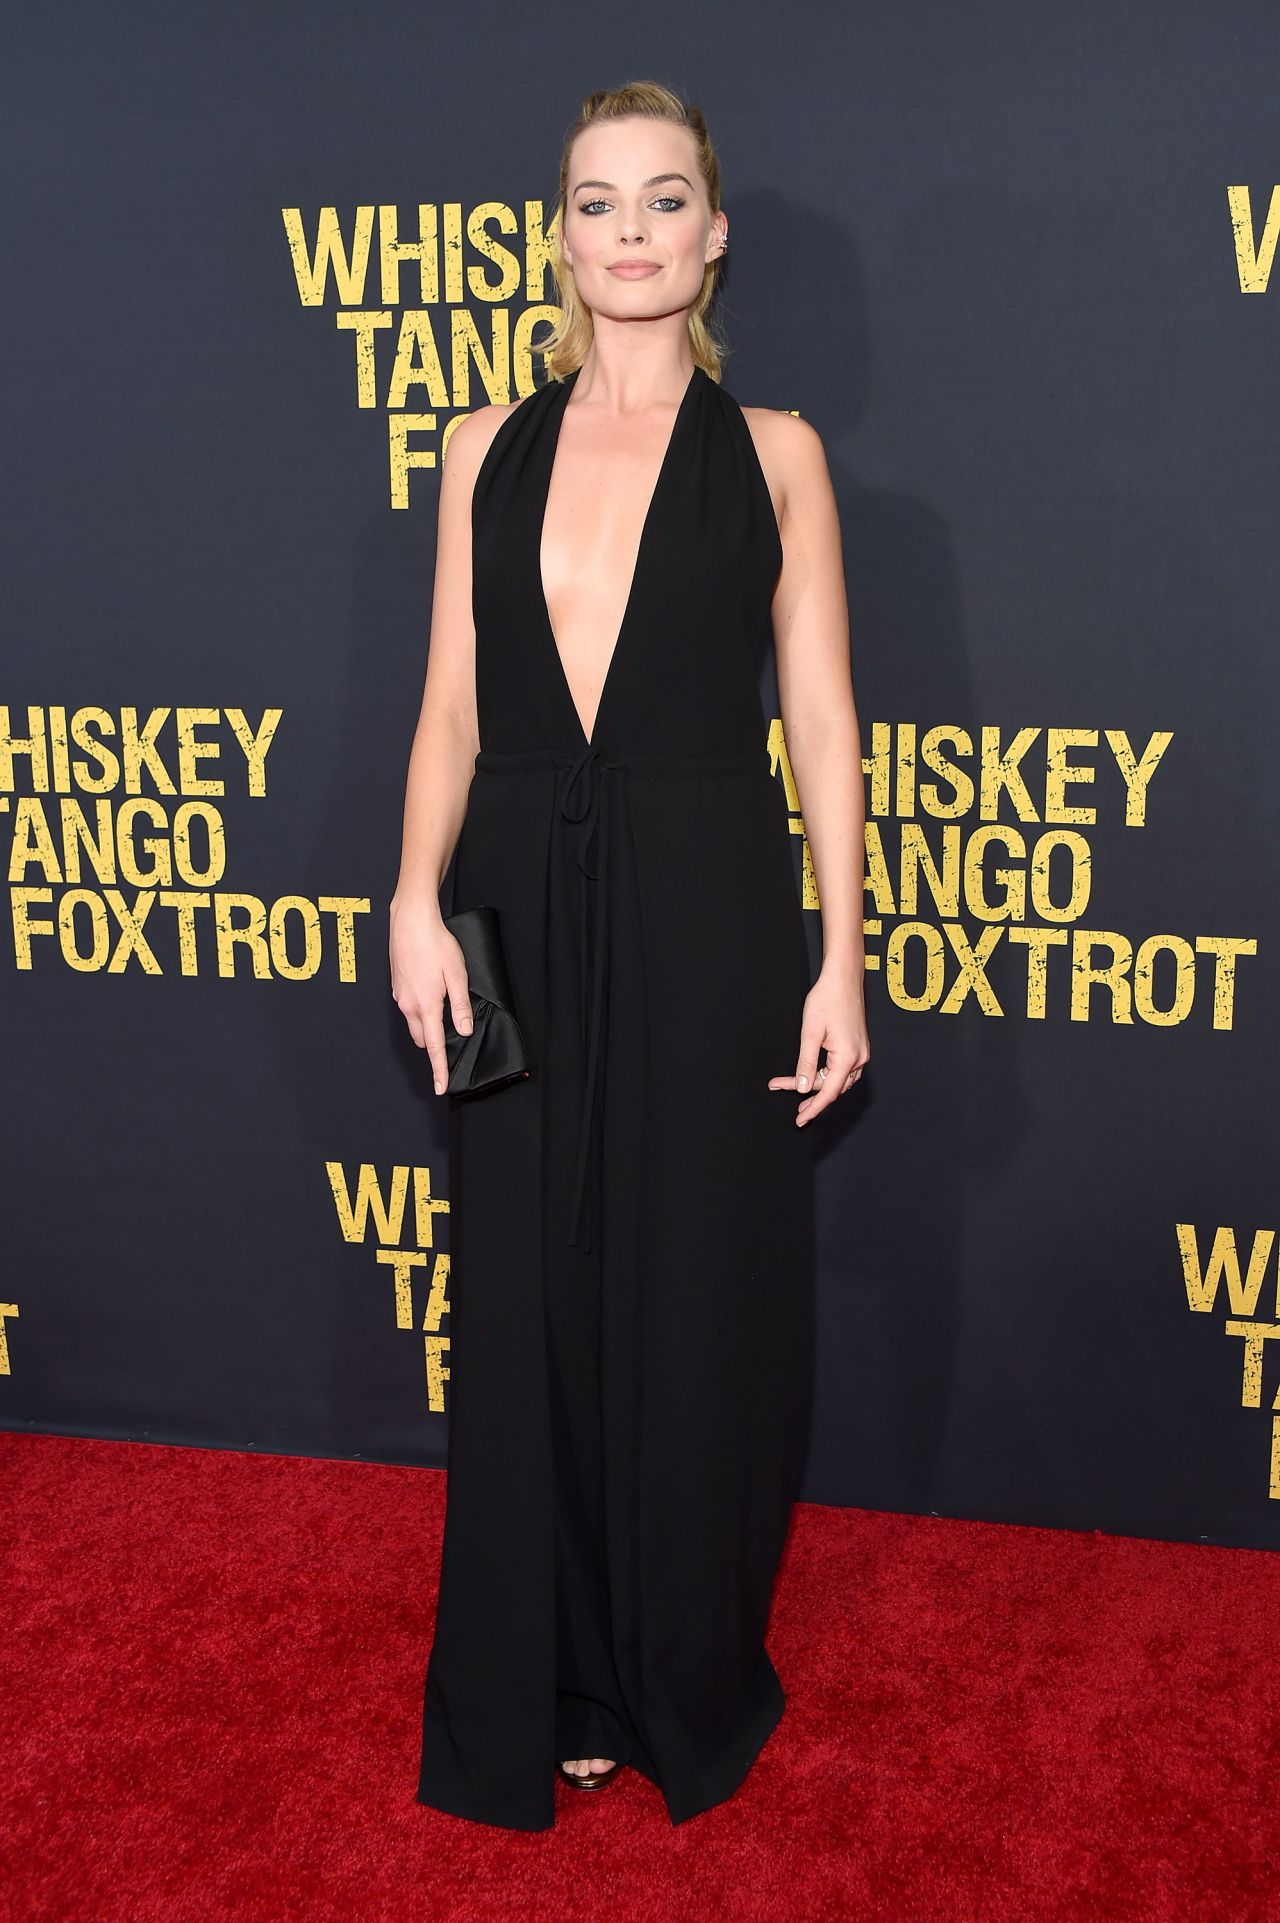 margot-robbie-whiskey-tango-foxtrot-premiere-in-new-york-city-ny-2